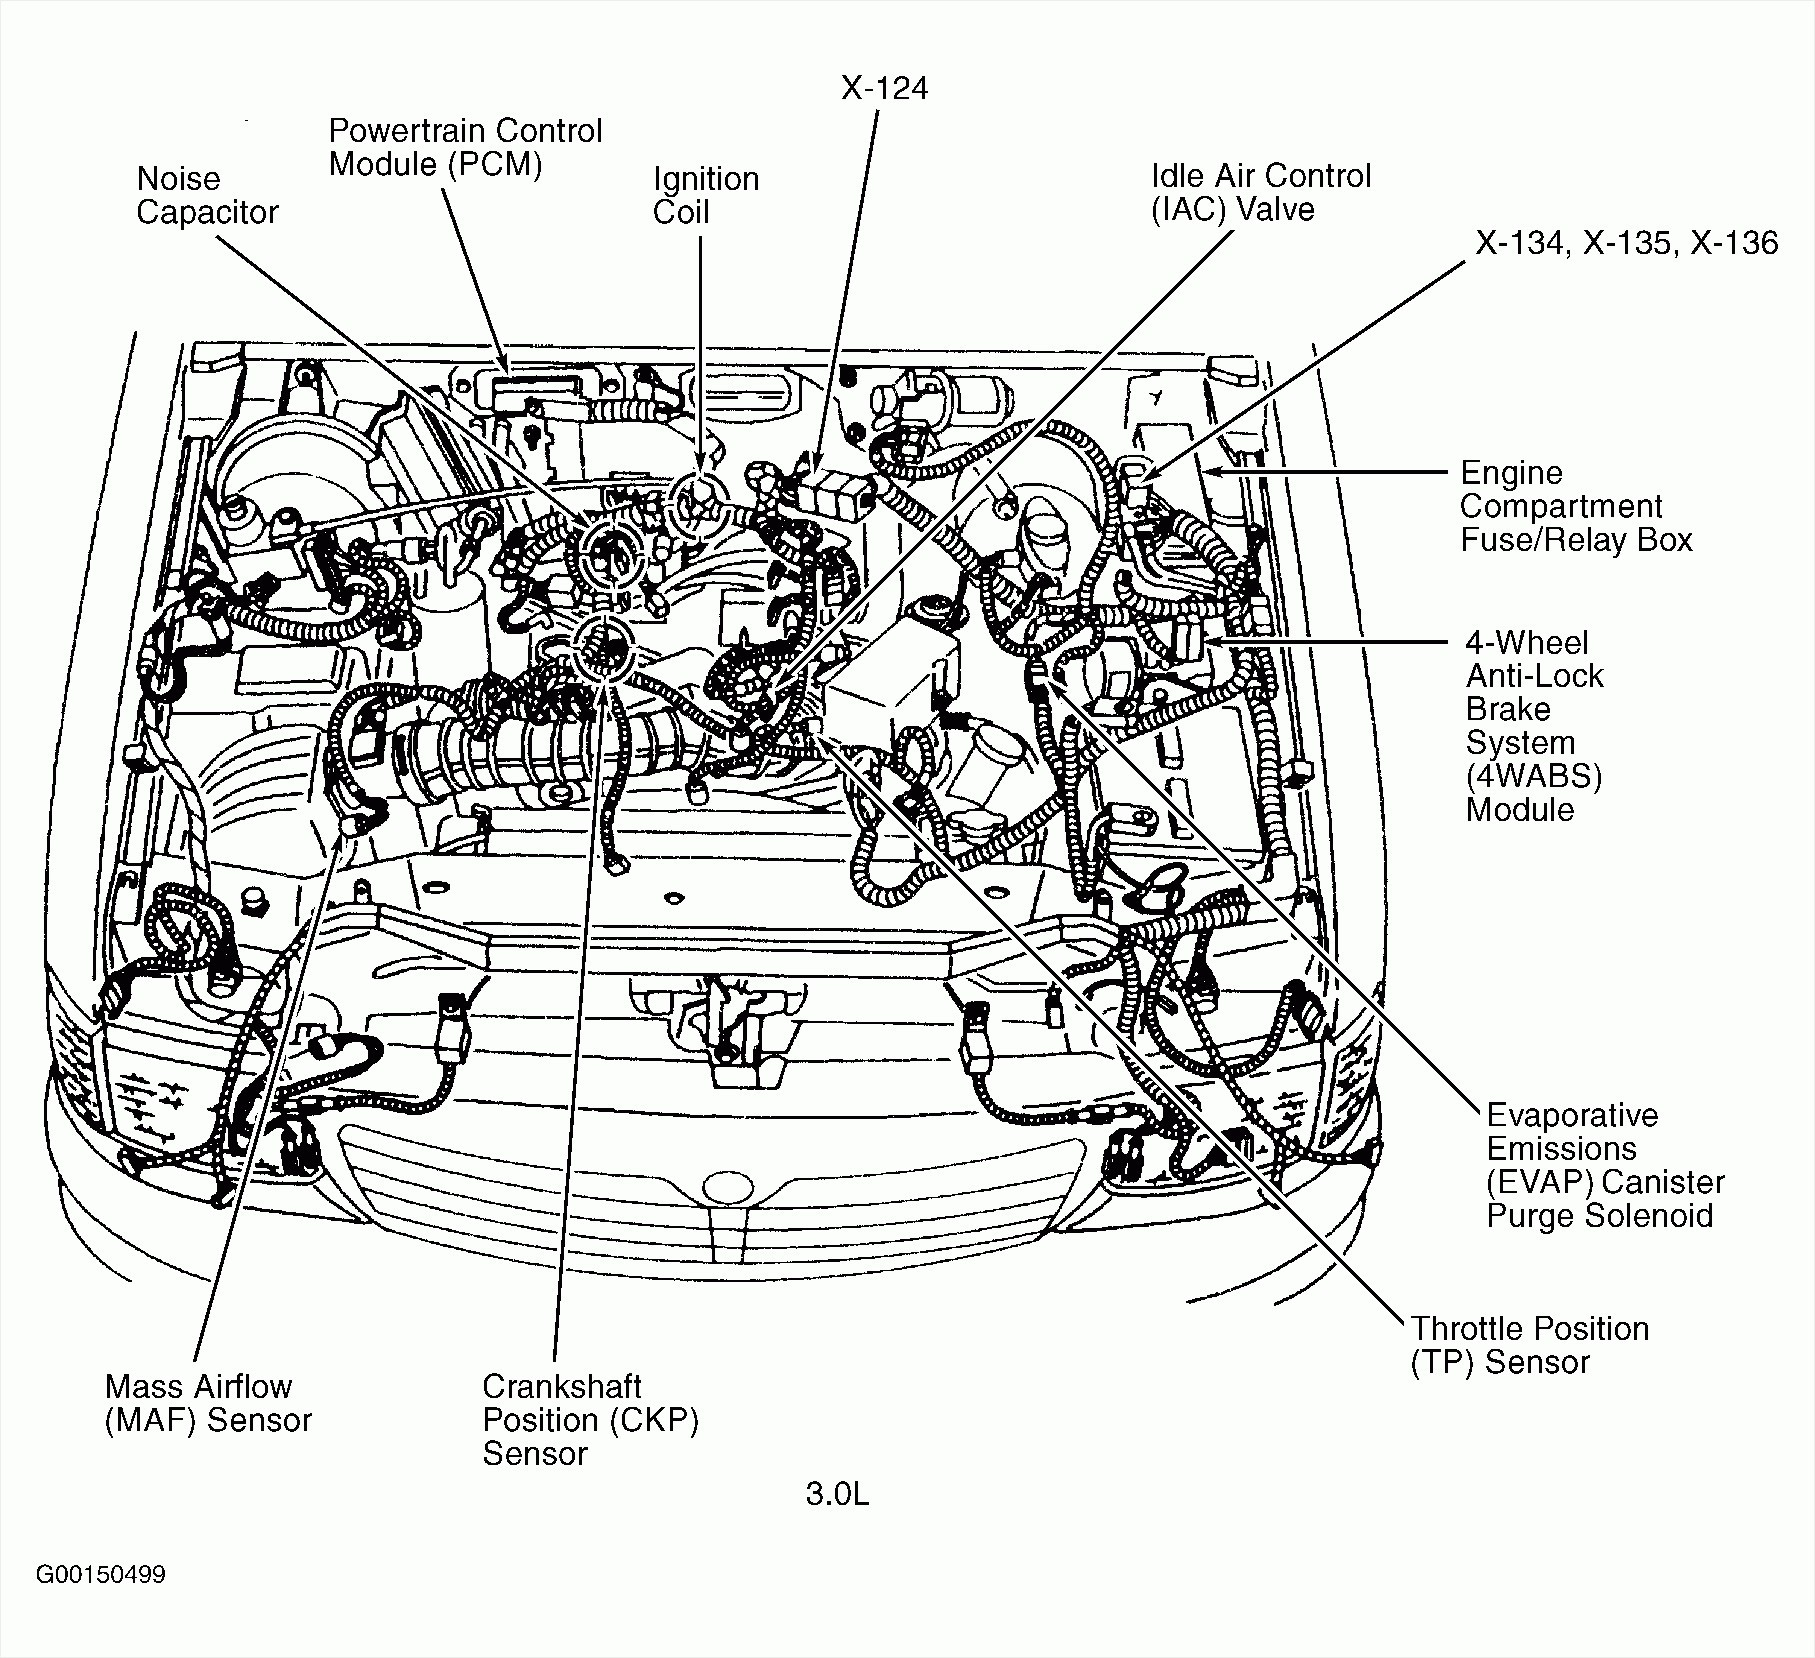 2000 impala engine diagram wiring diagram mega impala engine diagram wiring diagram for you 2000 chevy impala engine wiring harness diagram 2000 impala engine diagram